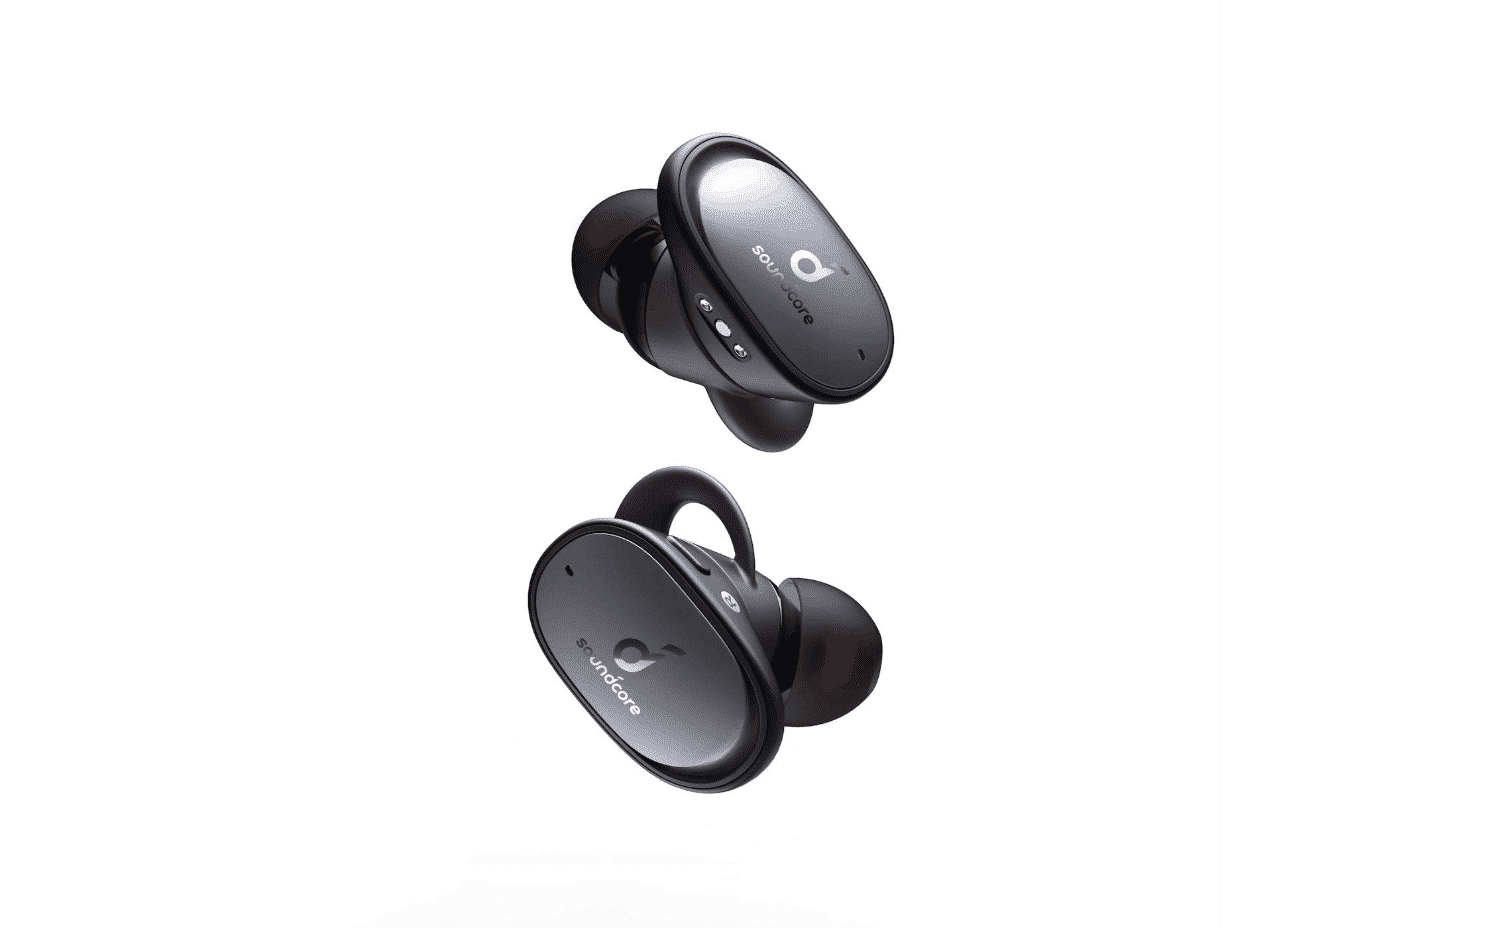 Get $40 Off Soundcore's True Wireless Earbuds Liberty 2 Pro